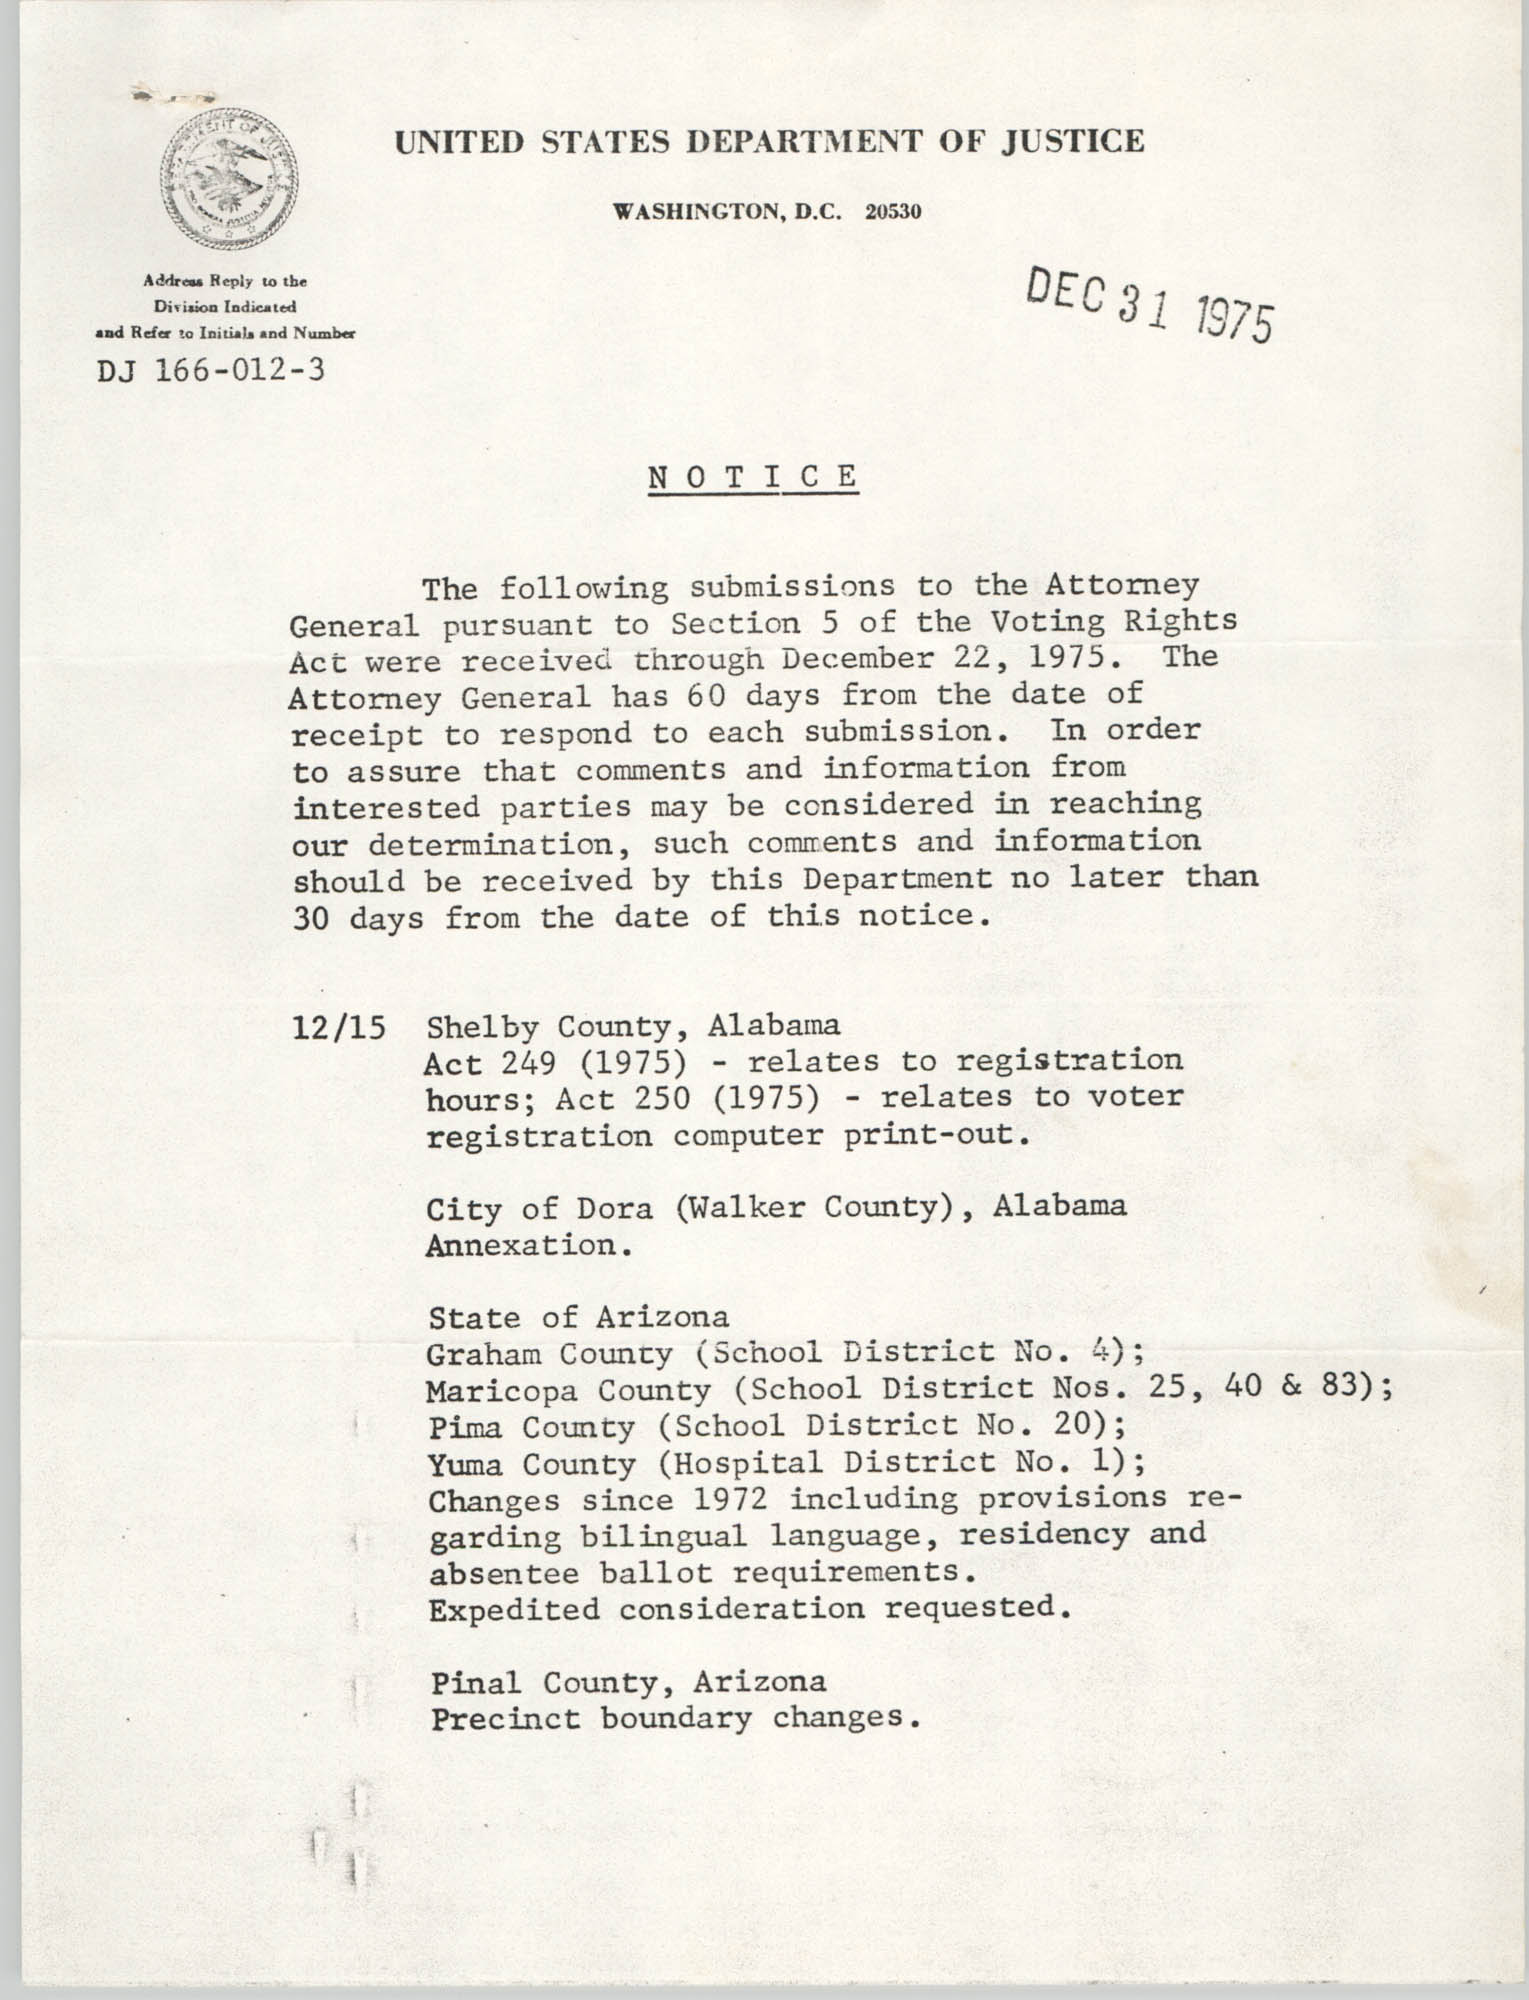 United States Department of Justice Notice, December 31, 1975